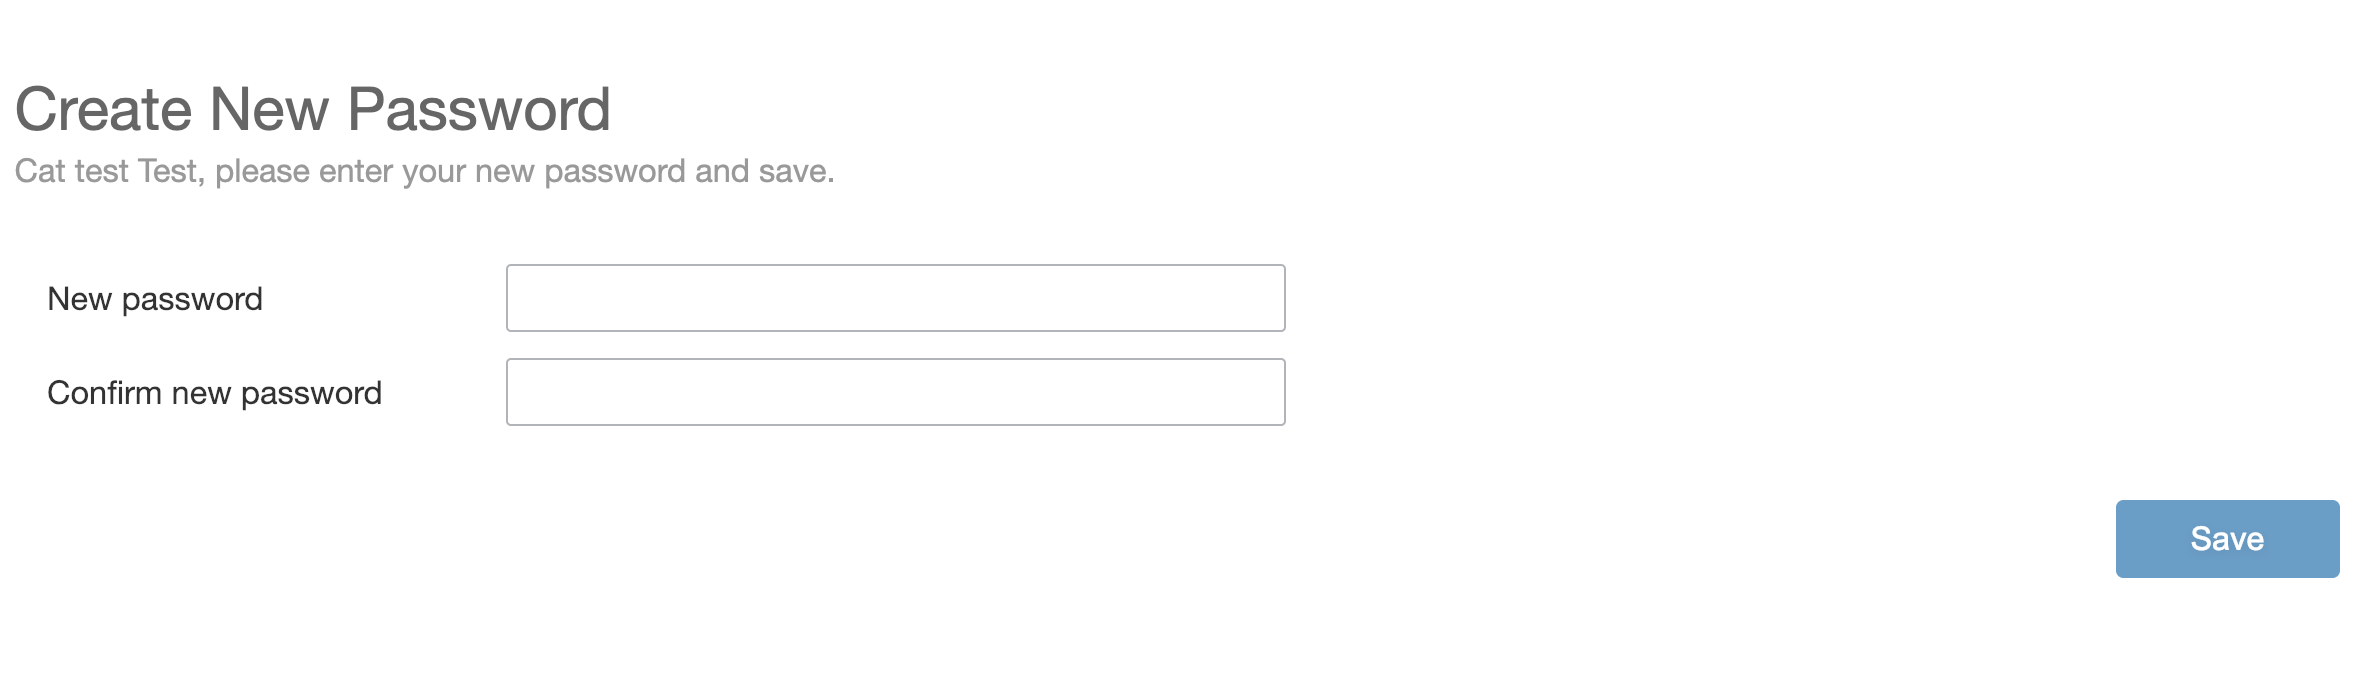 - Make-up and enter a password, click save.